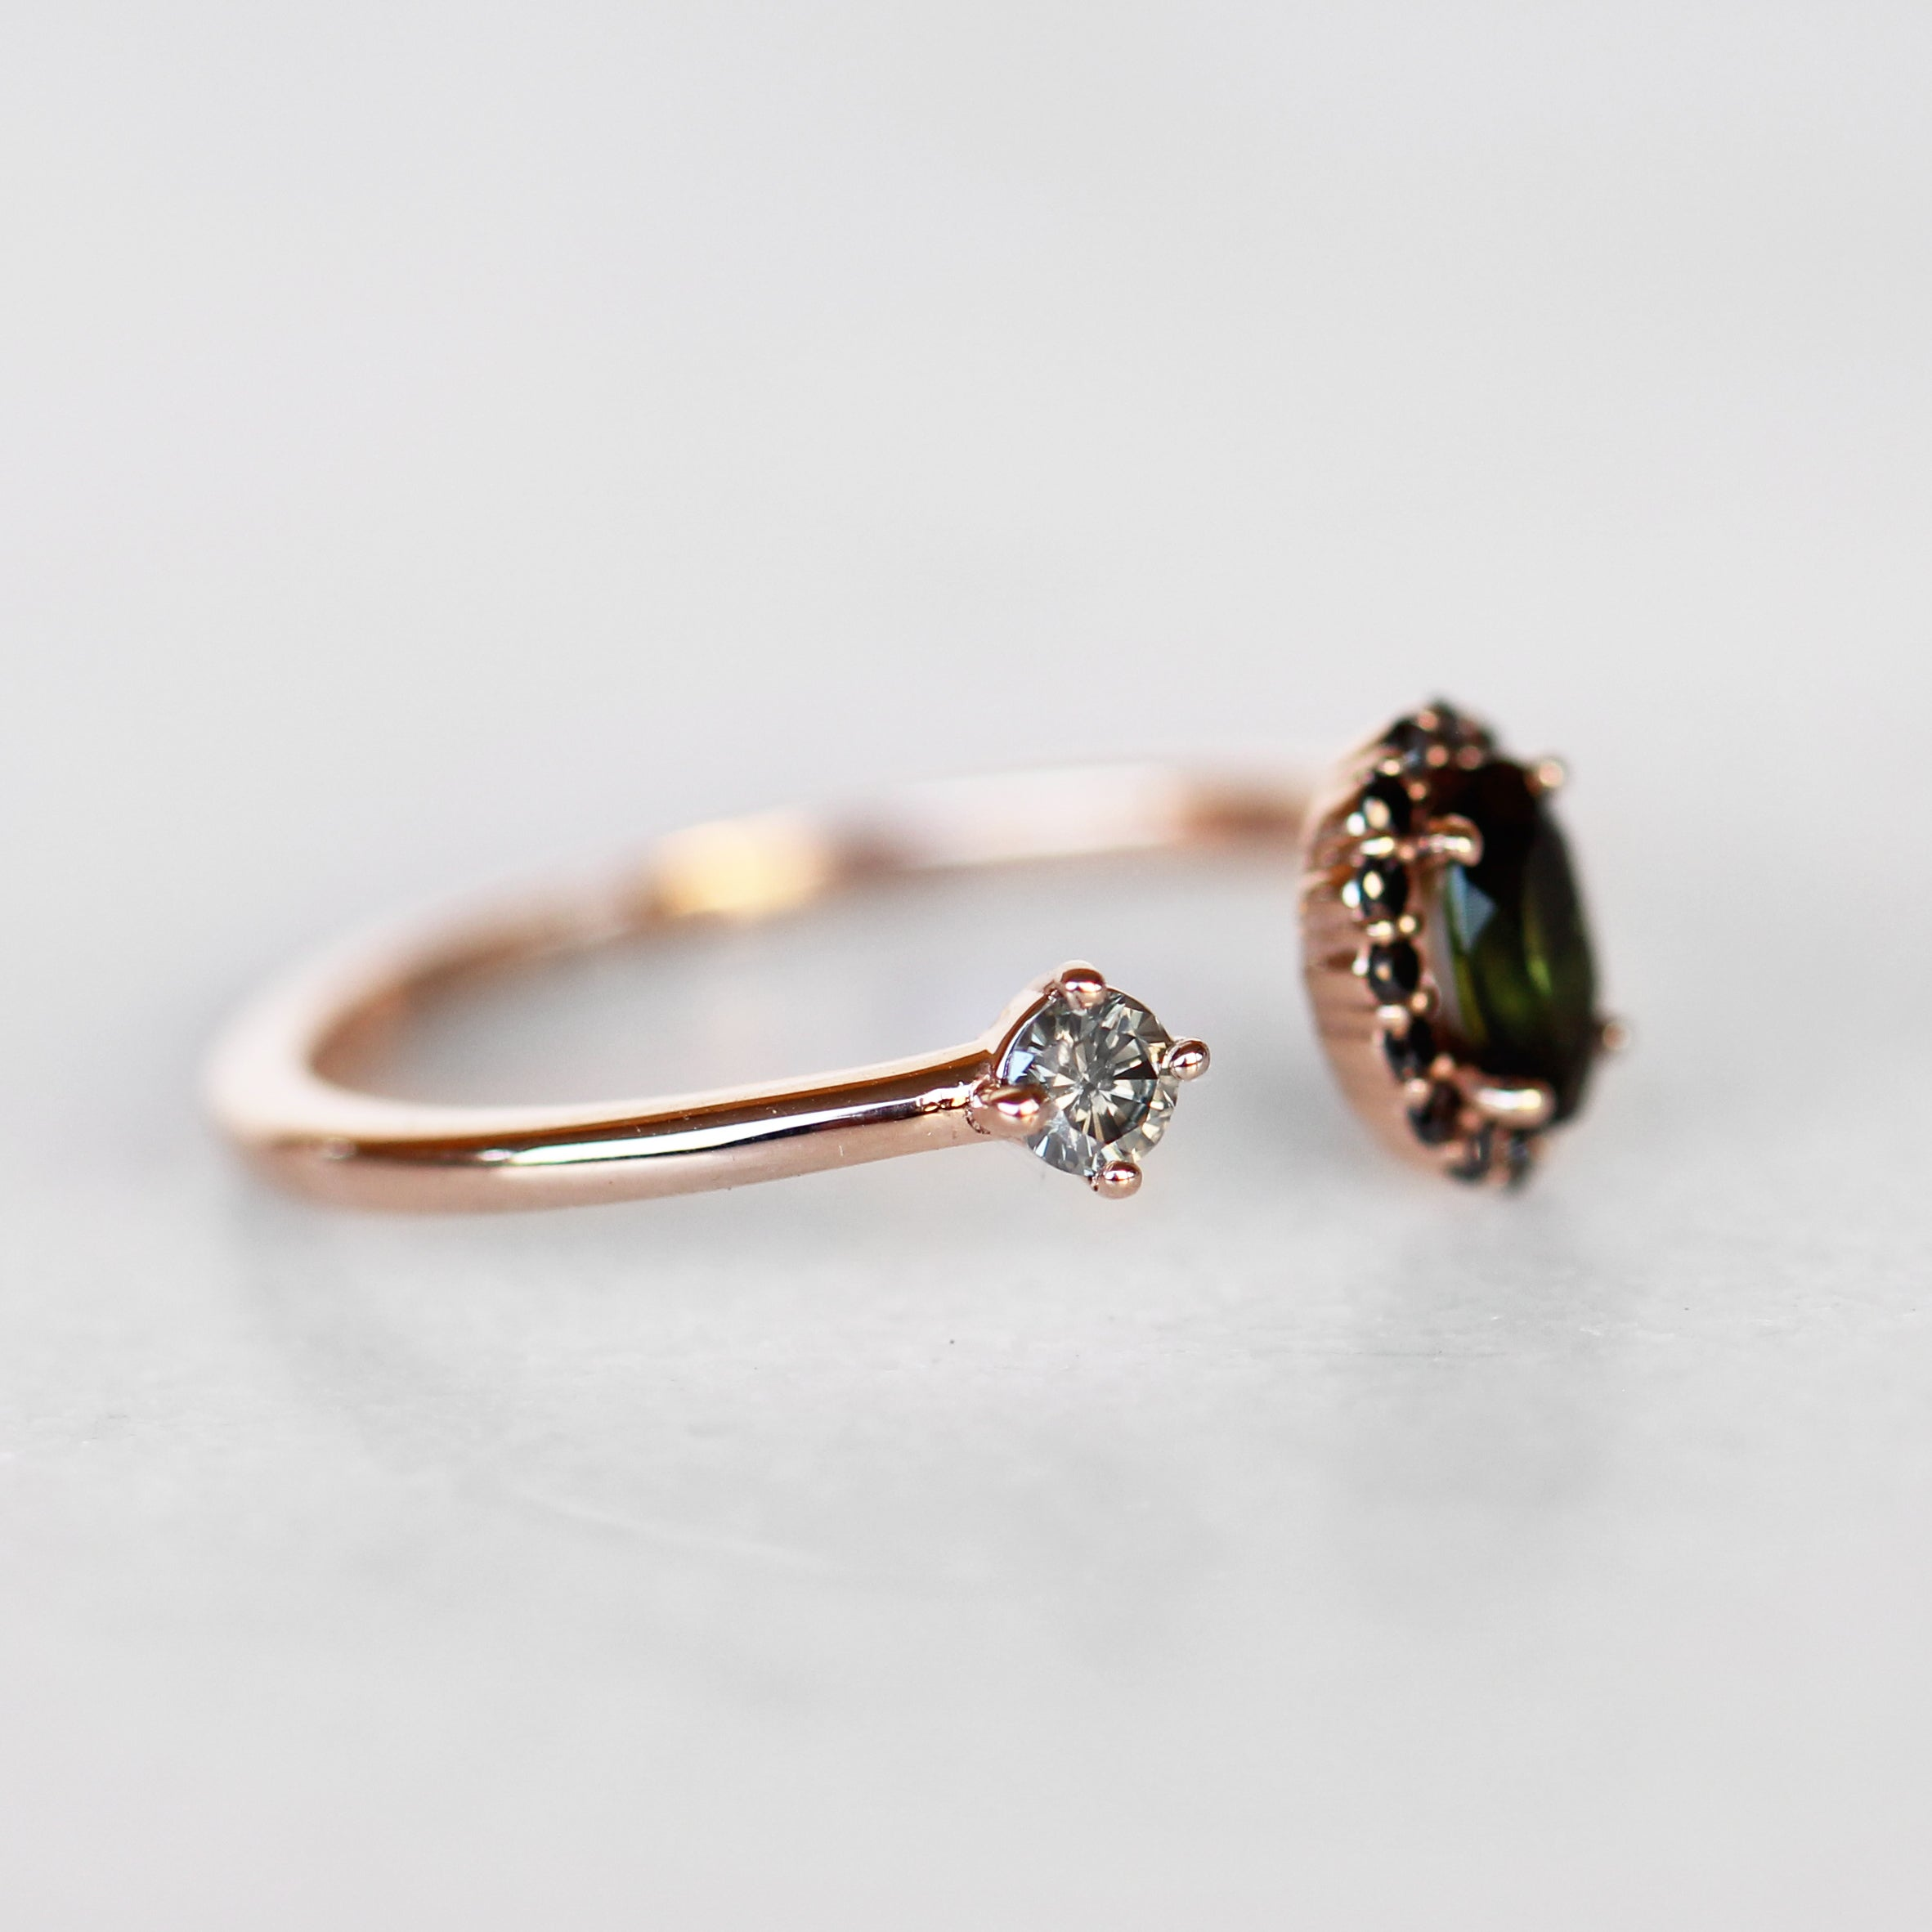 Celeste Ring with Oval Tourmaline and Diamond Accent in 10k Rose Gold - Ready to Size and Ship - Midwinter Co. Alternative Bridal Rings and Modern Fine Jewelry